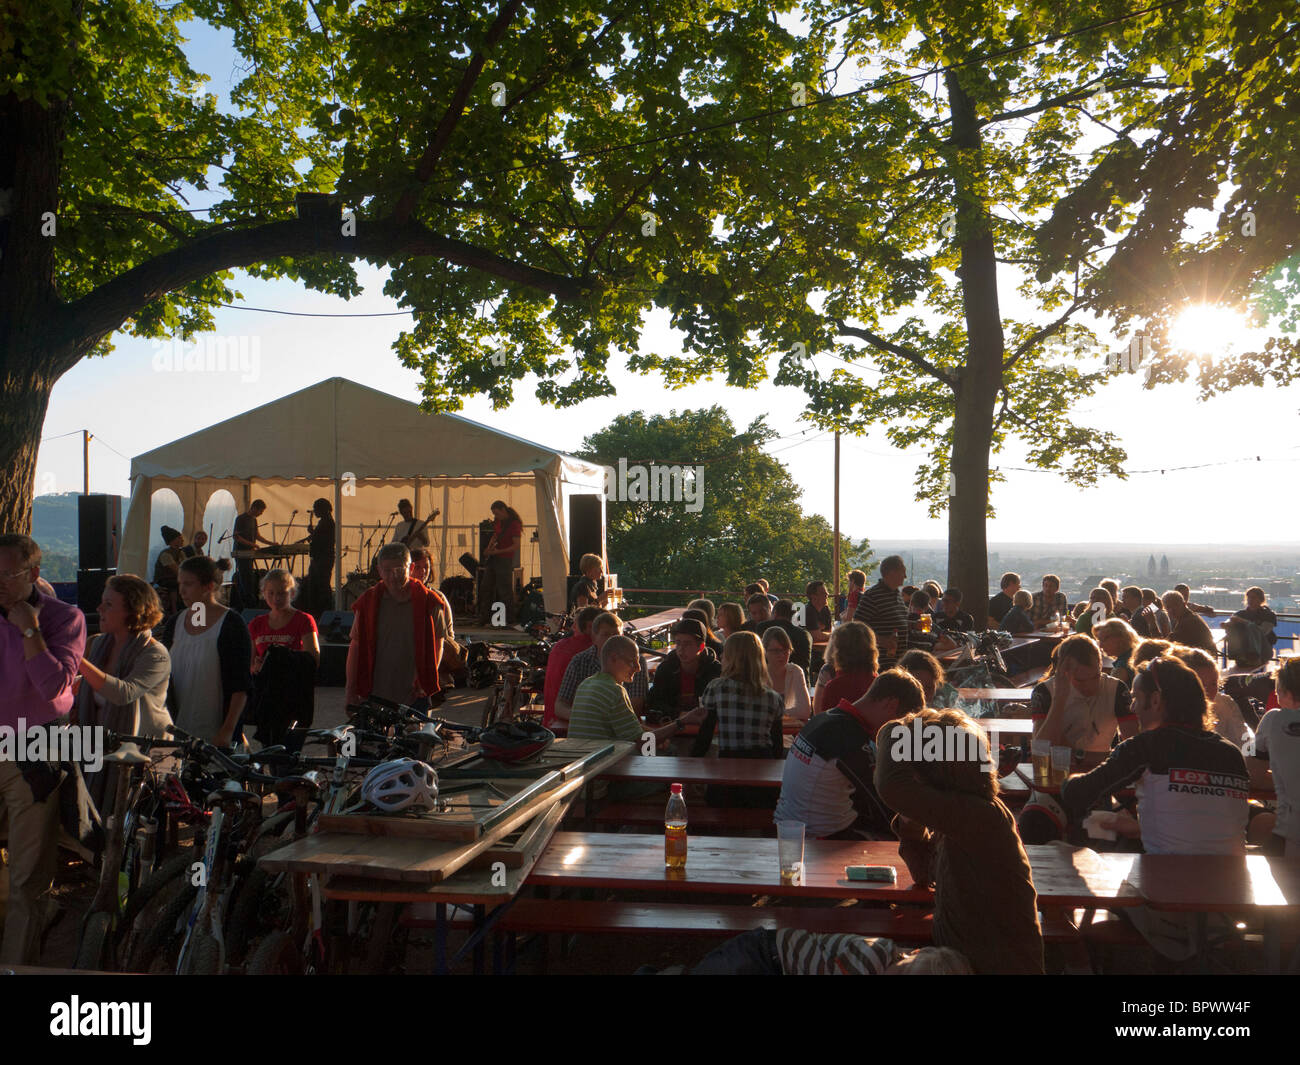 Sitting in the evening sun, visitors of the Freiburg Schlossberg festival in Southern Germany listen to a music - Stock Image